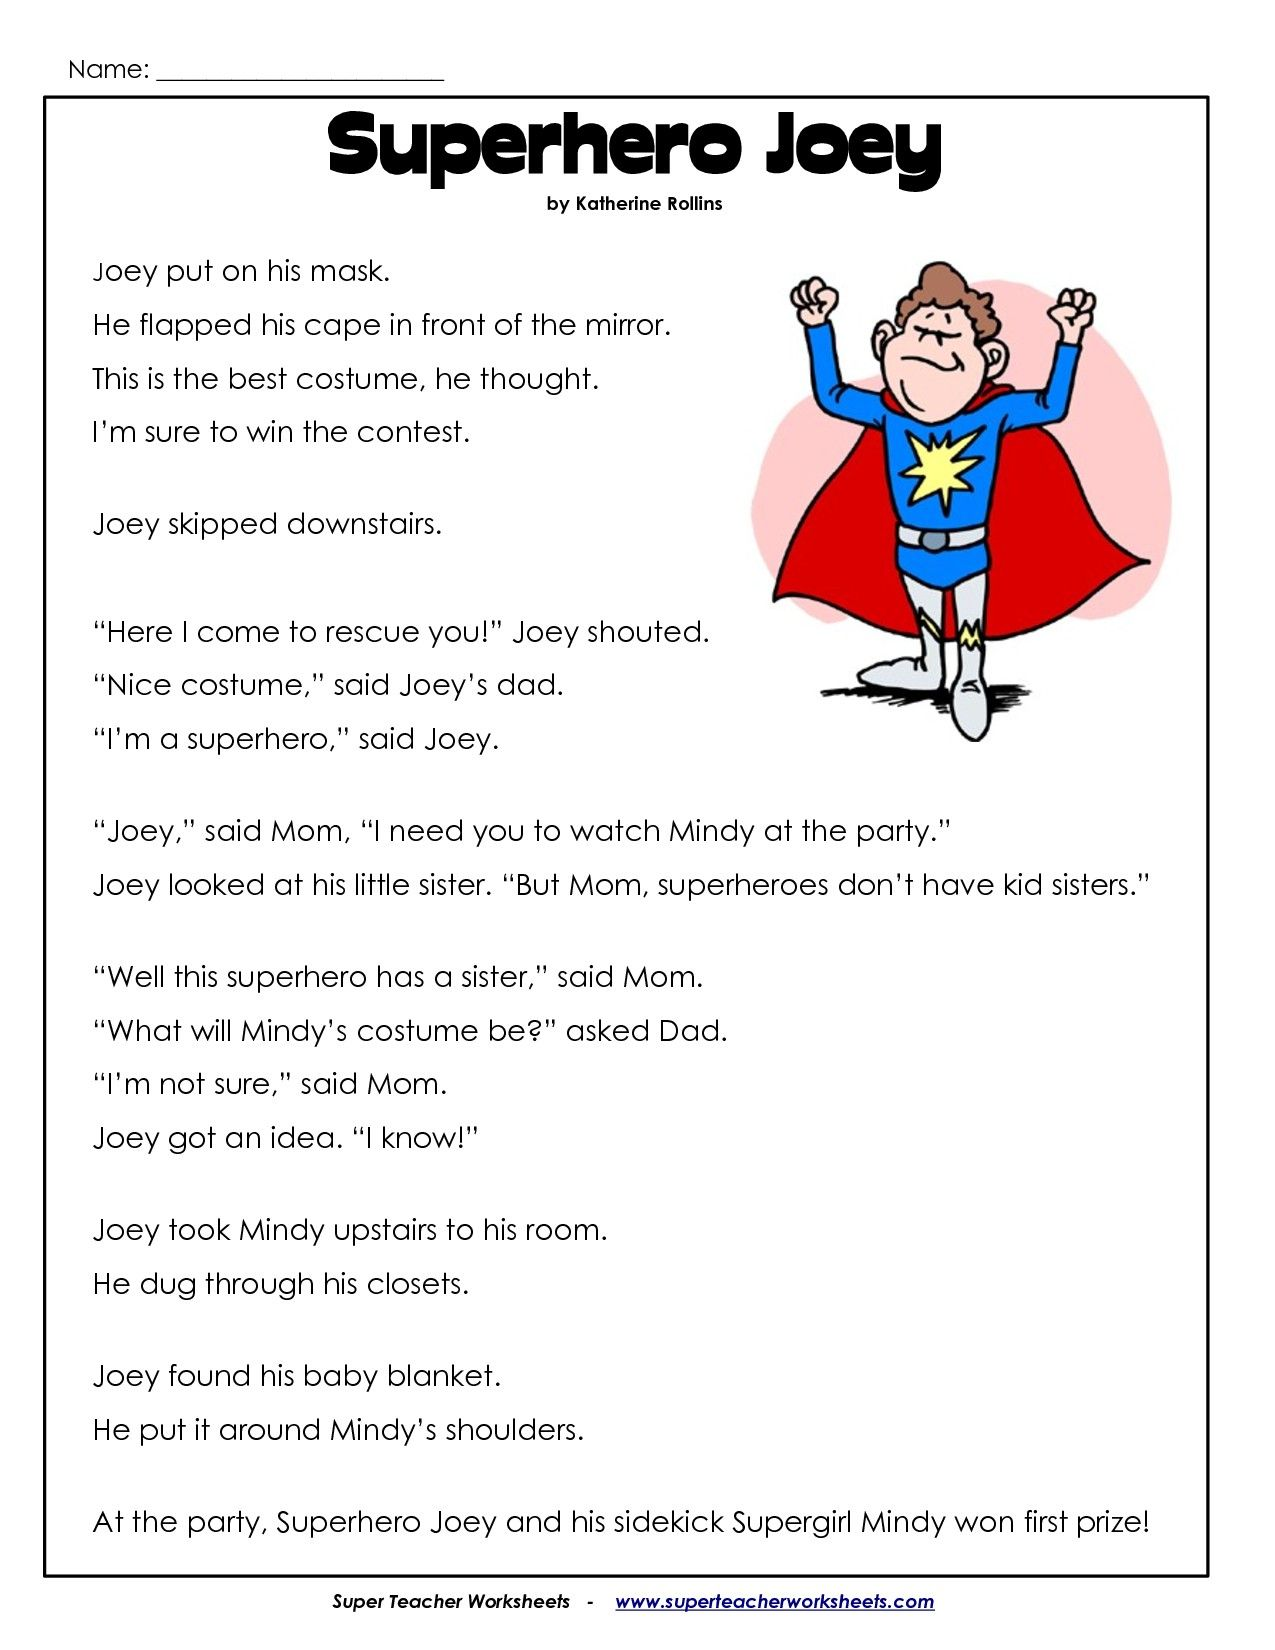 Worksheet Reading For Second Graders second grade reading comprehension worksheet the cowboy 2nd worksheets pdf